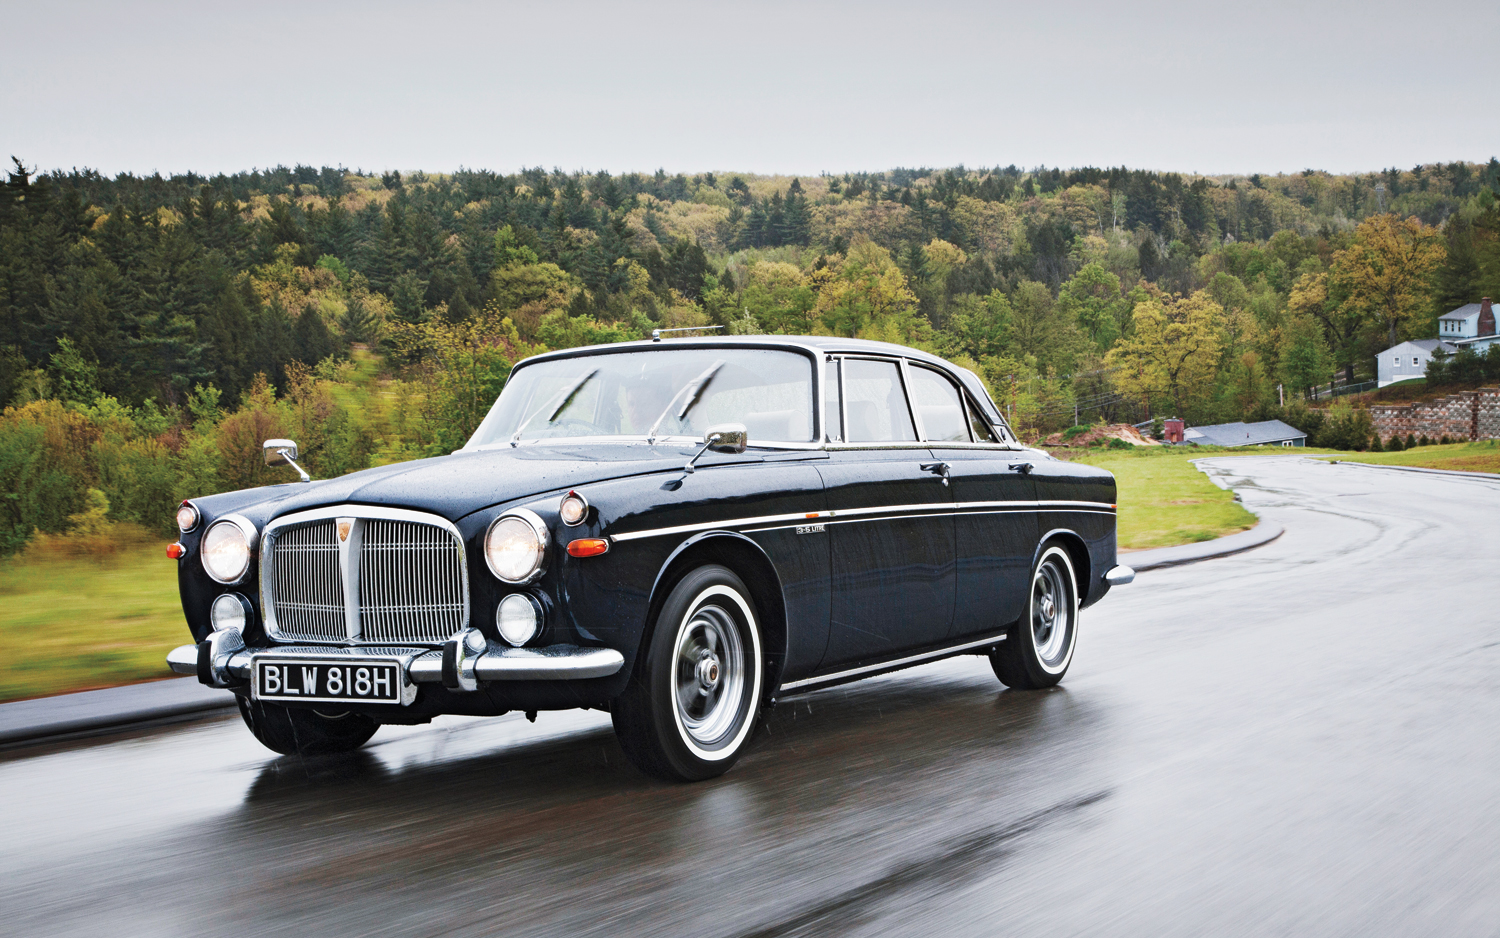 1970 Rover 3.5 Litre Coupe Classic Drive - Motor Trend